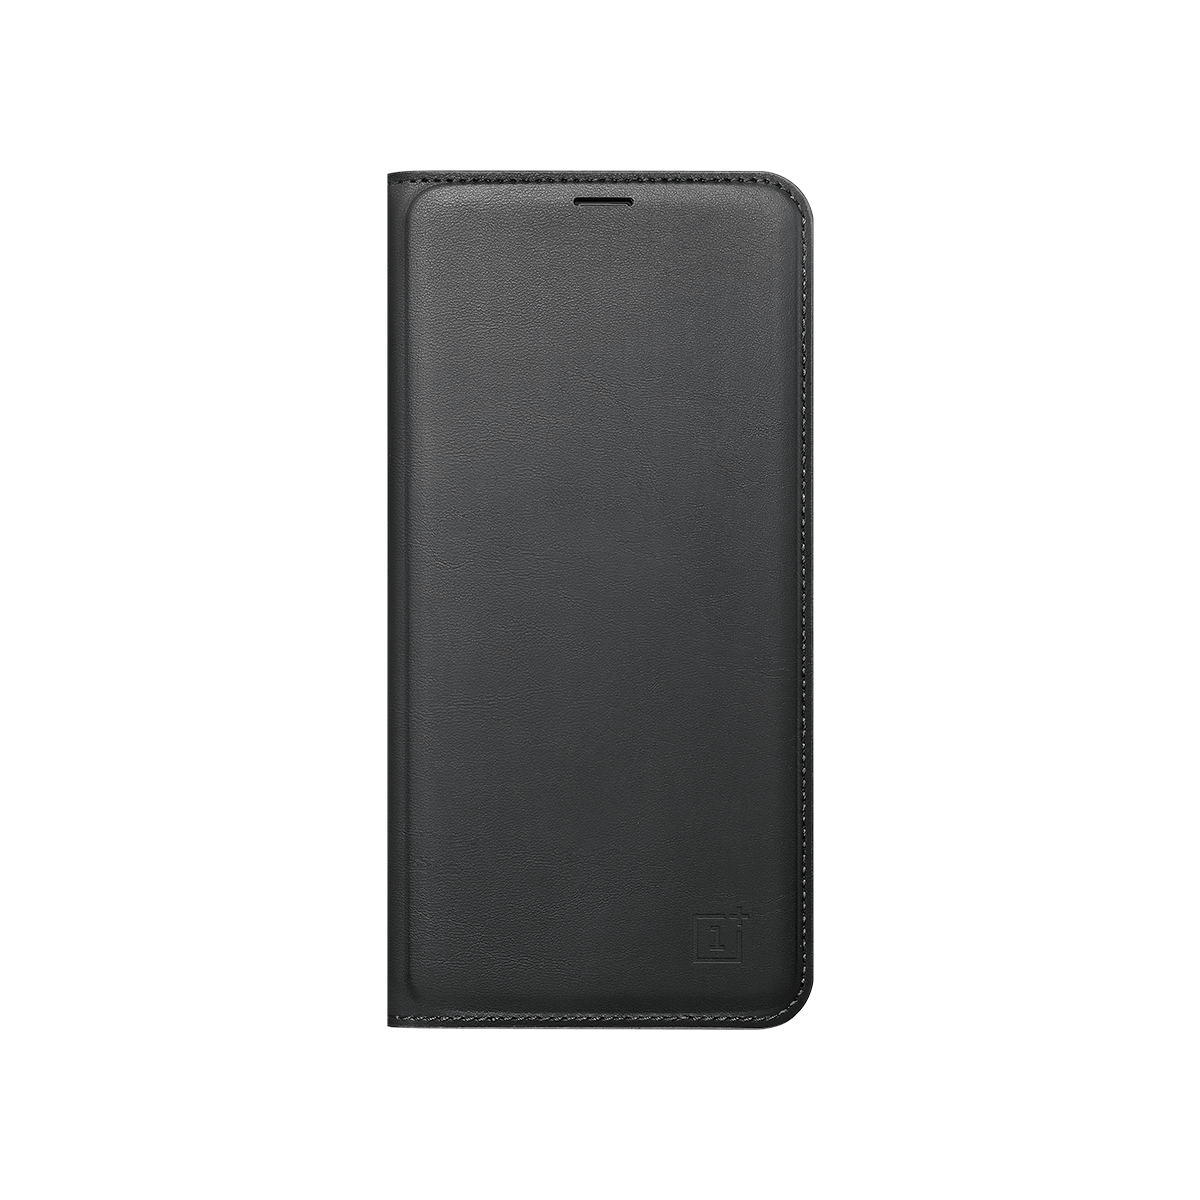 Compare cheap offers & prices of OnePlus 5T Flip Cover manufactured by OnePlus